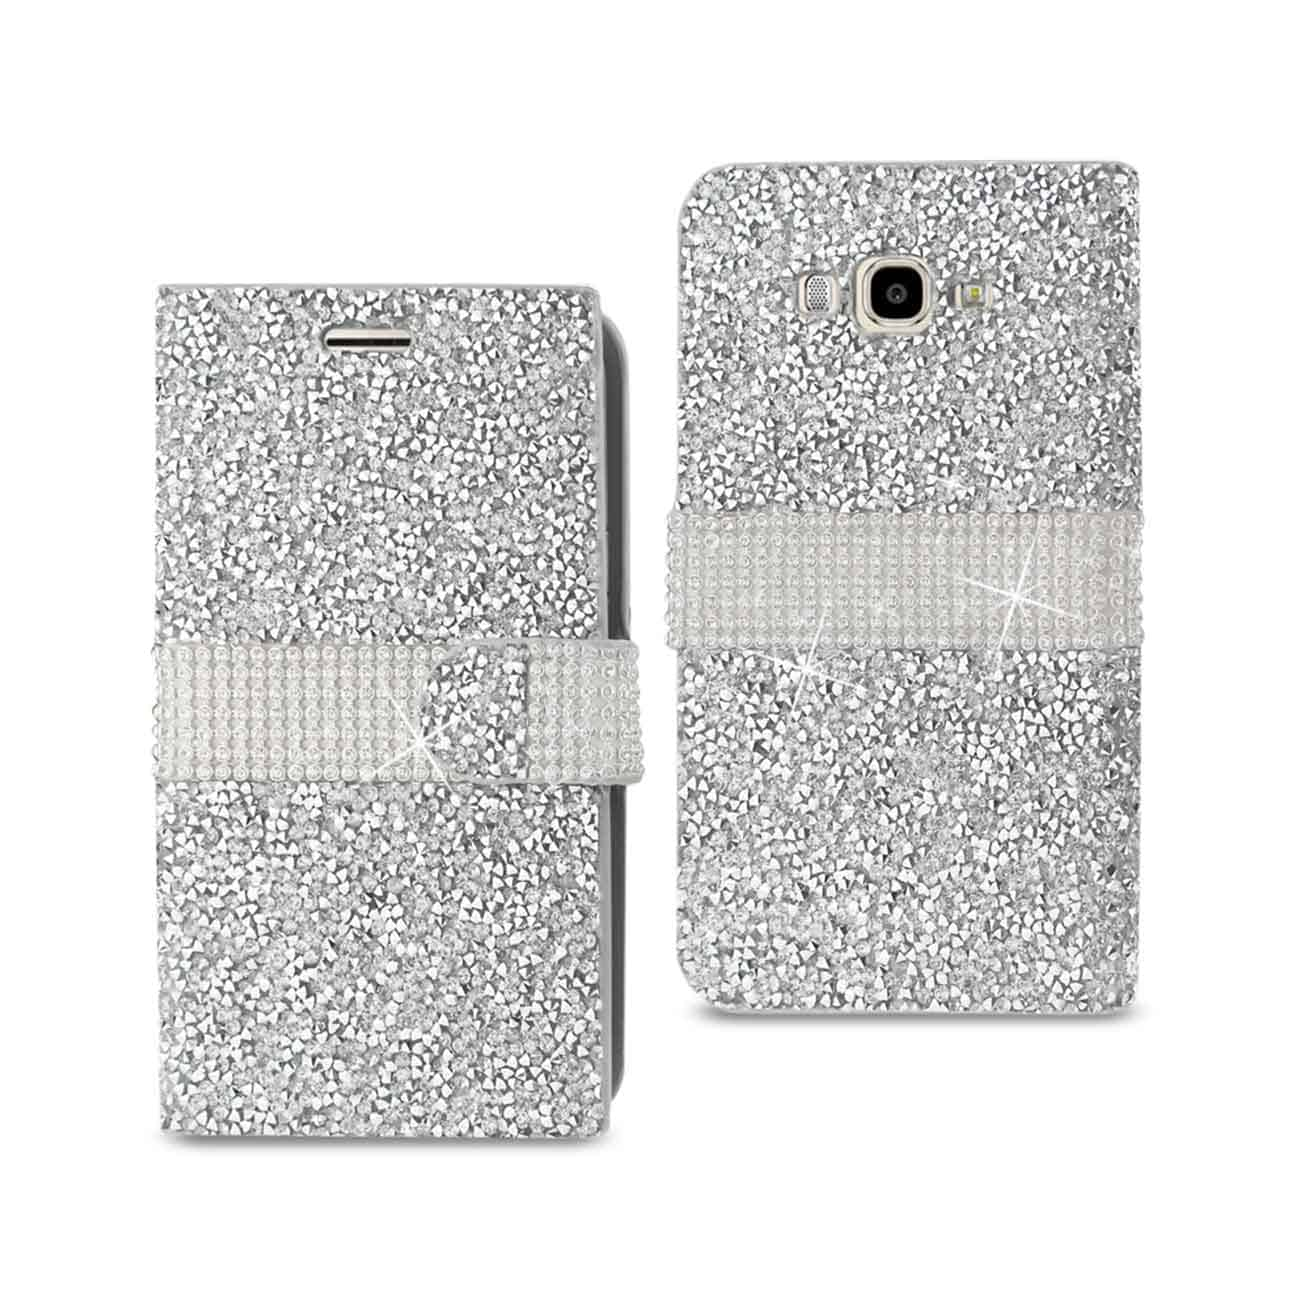 SAMSUNG GALAXY J7 JEWELRY RHINESTONE WALLET CASE IN SILVER